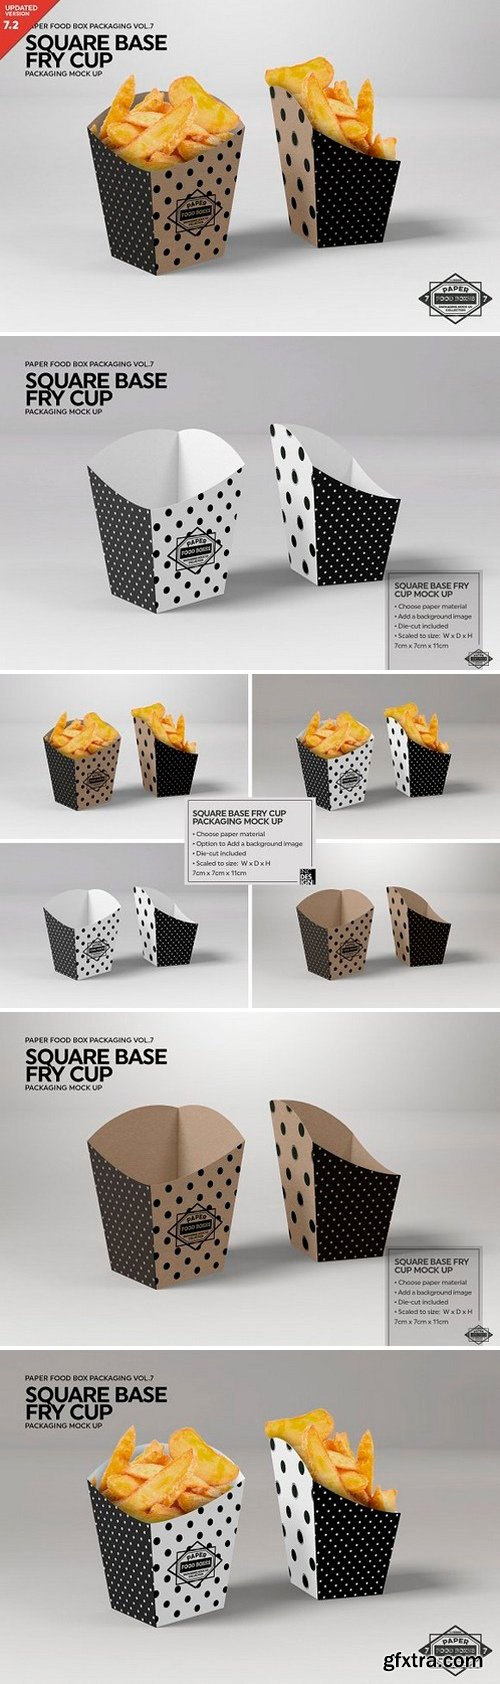 CM - Square Base Fry Cup Packaging Mockup 2487970